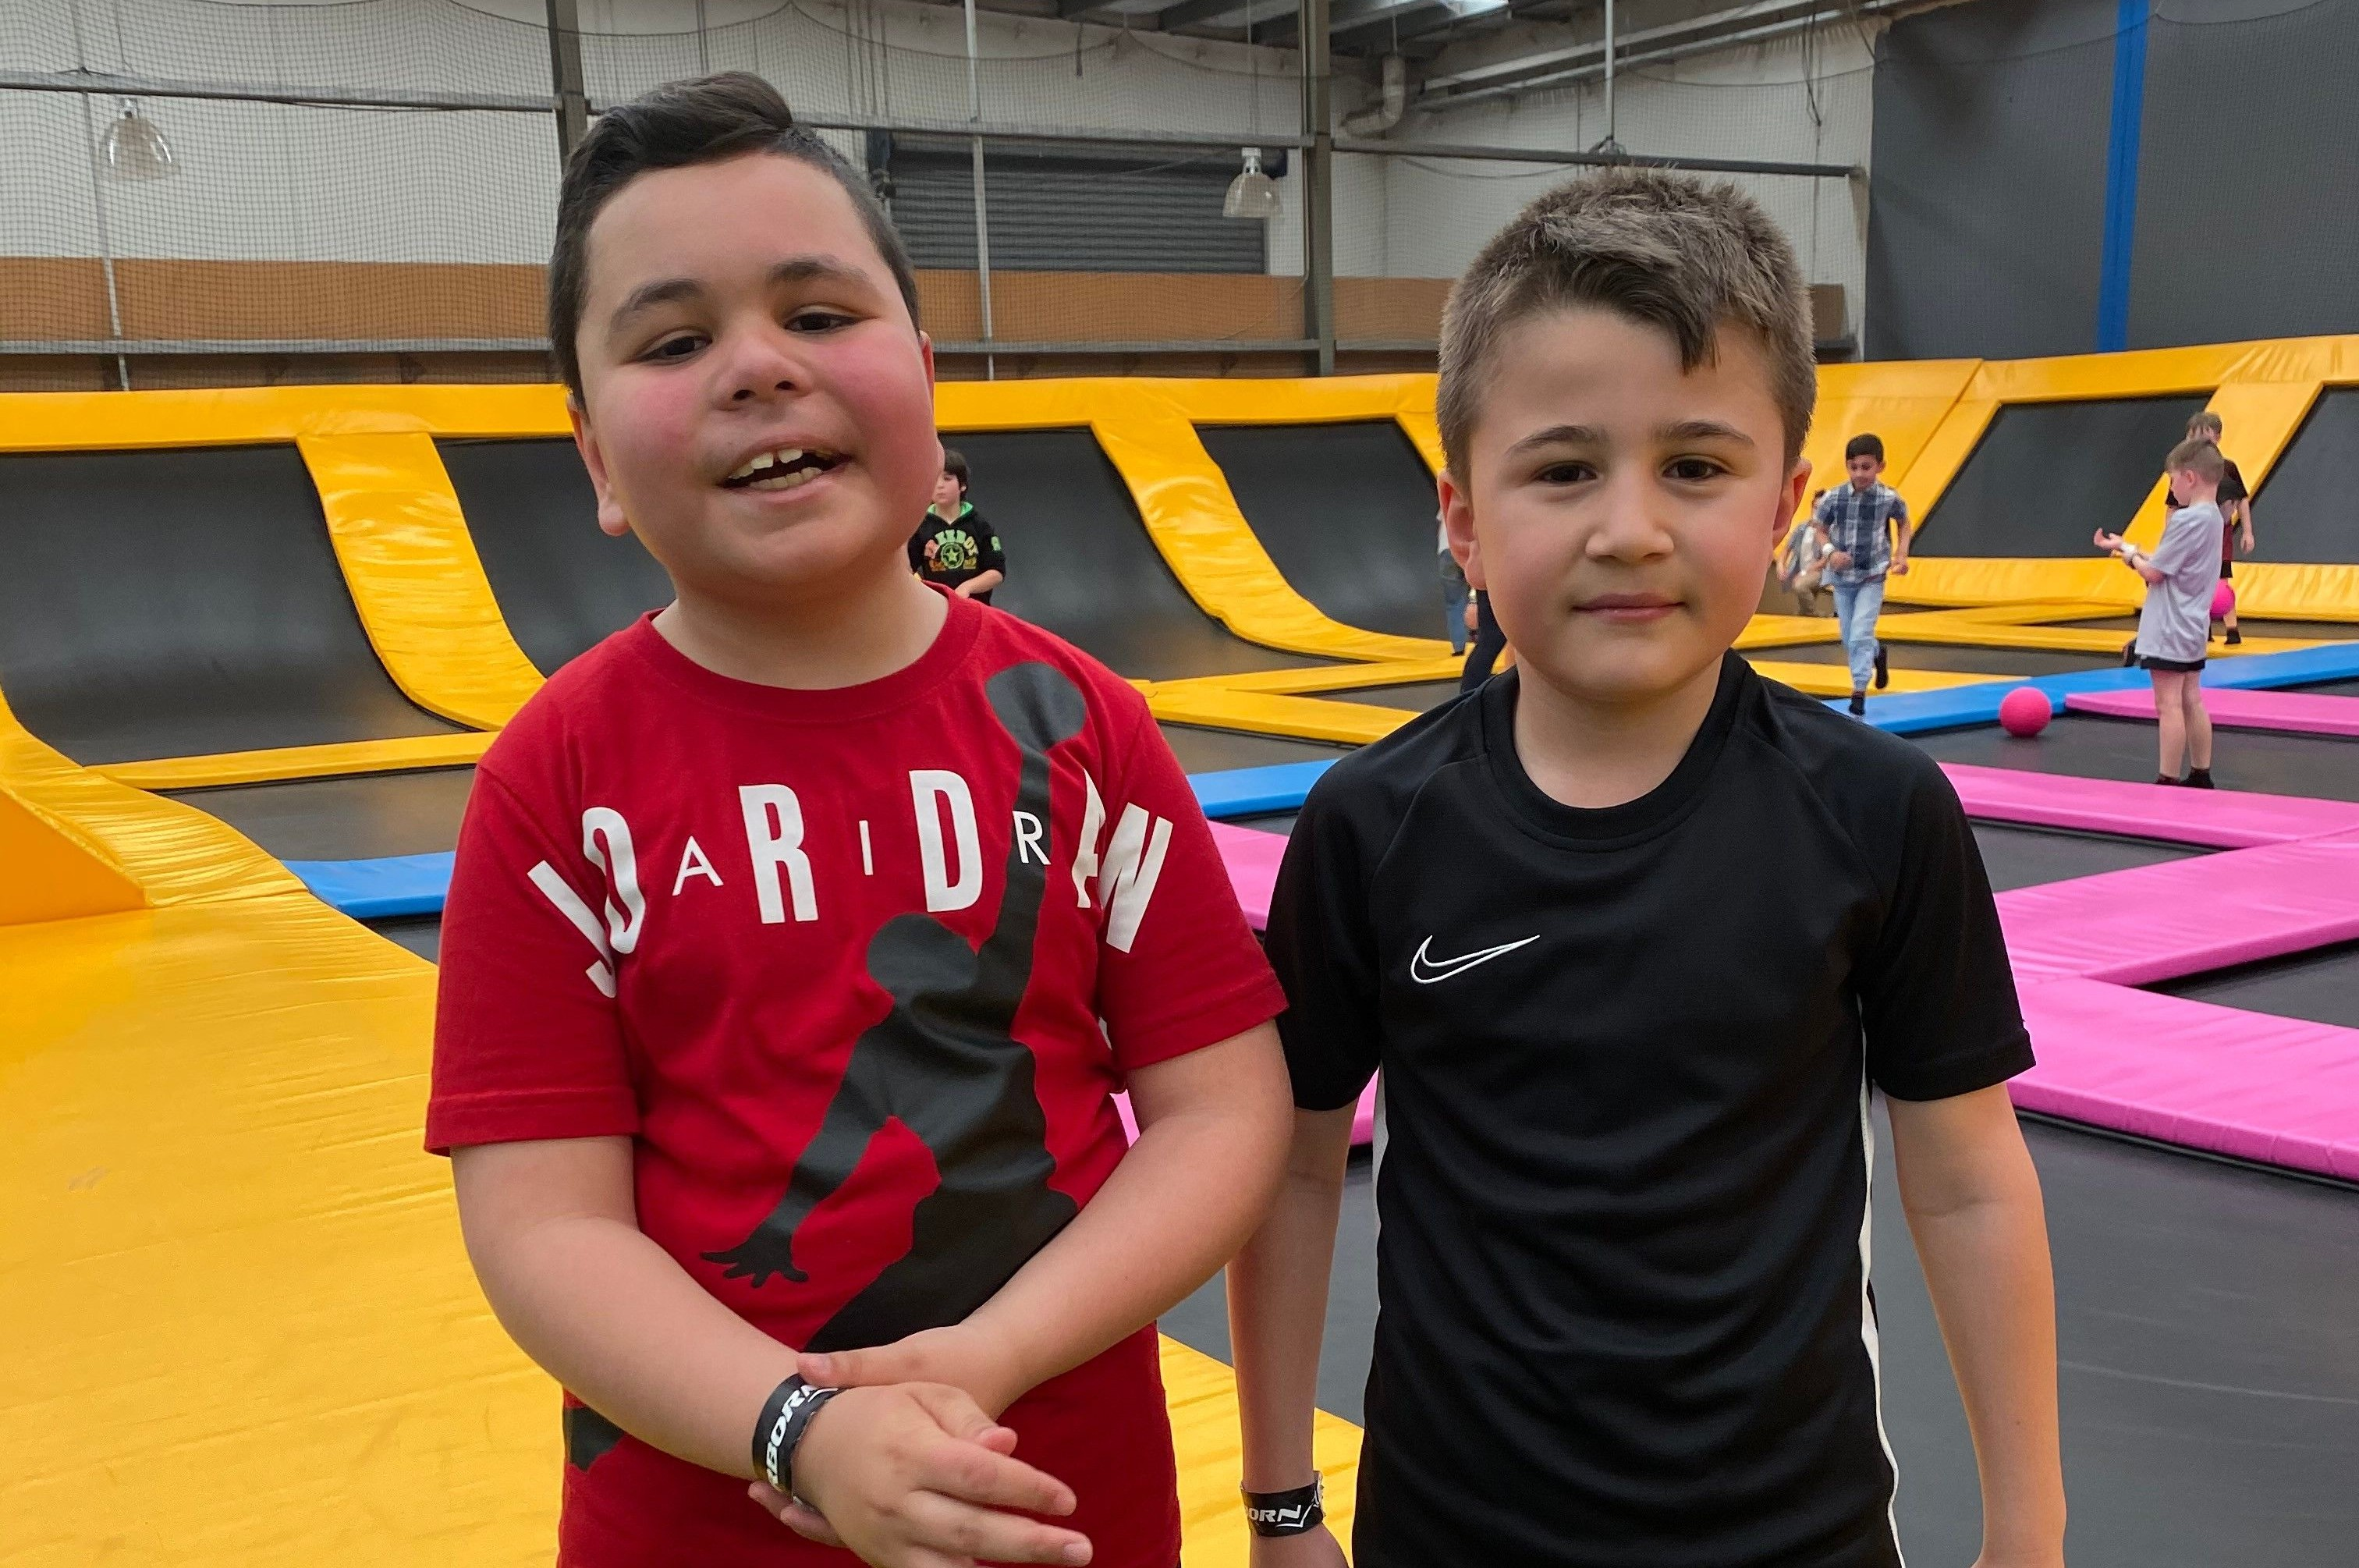 Cem and his cousin at a trampoline play centre